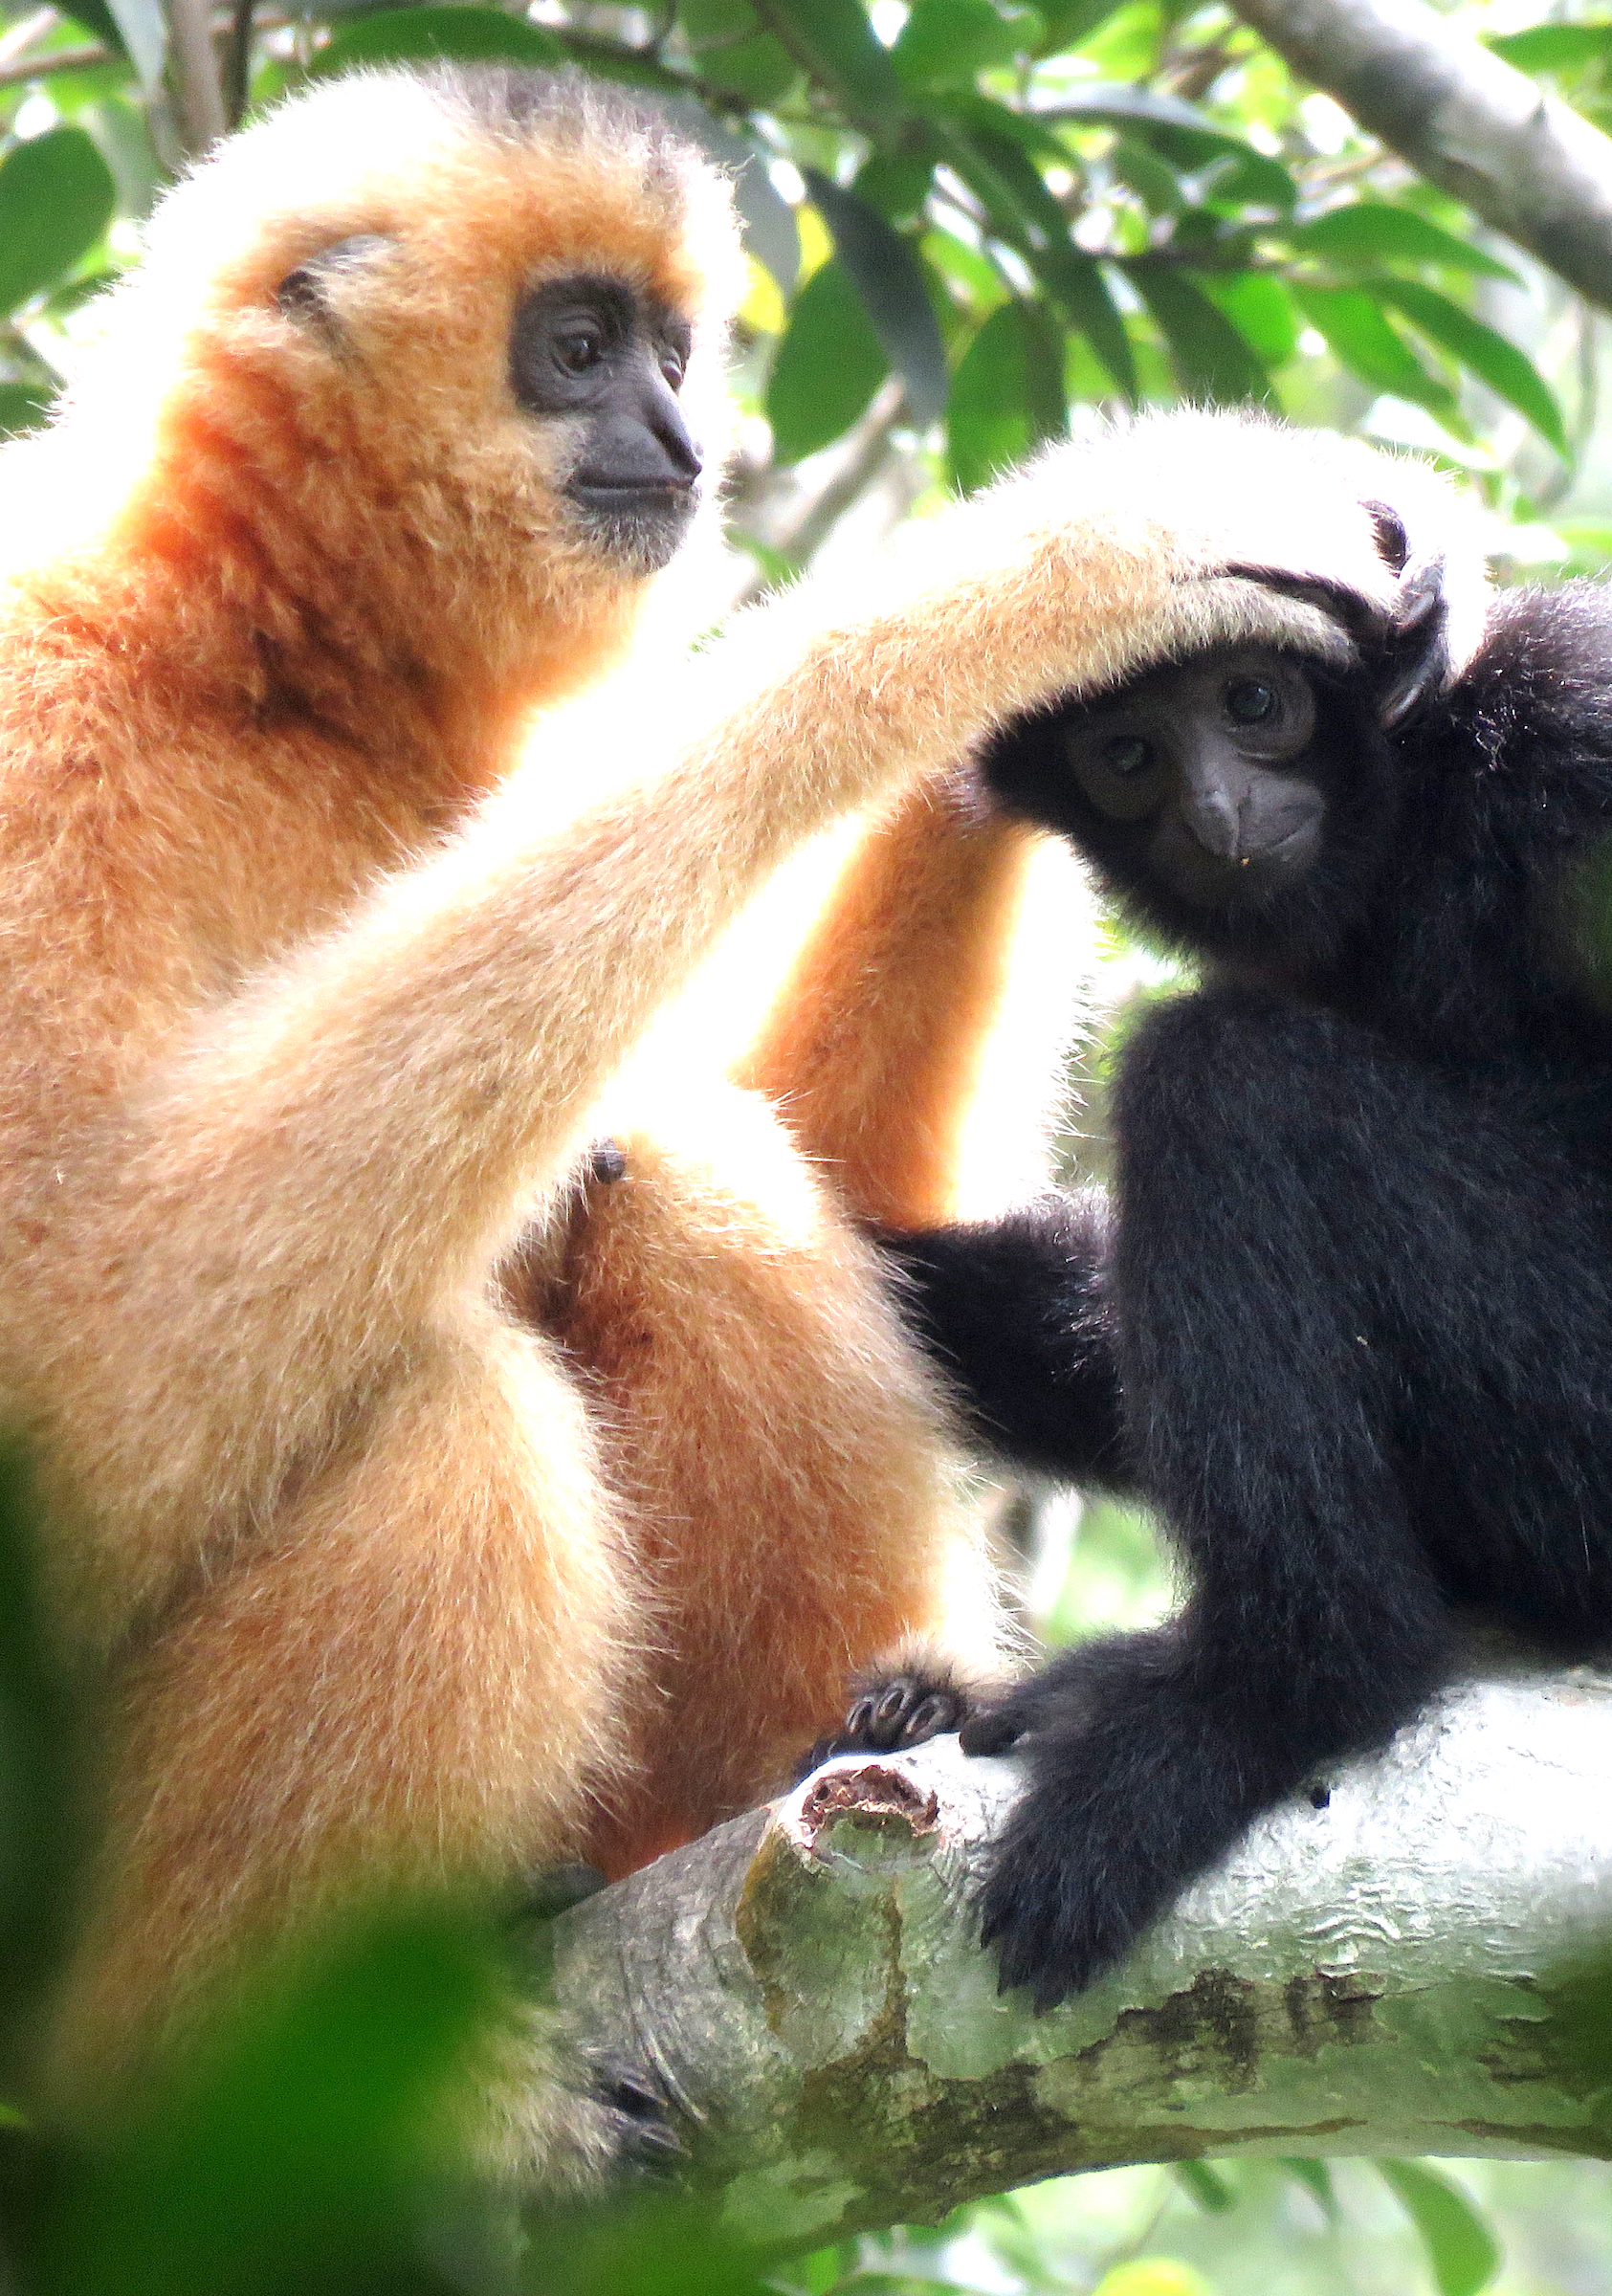 An adult female Hainan gibbon grooms a member of its troop in the forest of the Bawangling National Nature Reserve in Hainan Province. Photograph courtesy of Kadoorie Farm & Botanic Garden